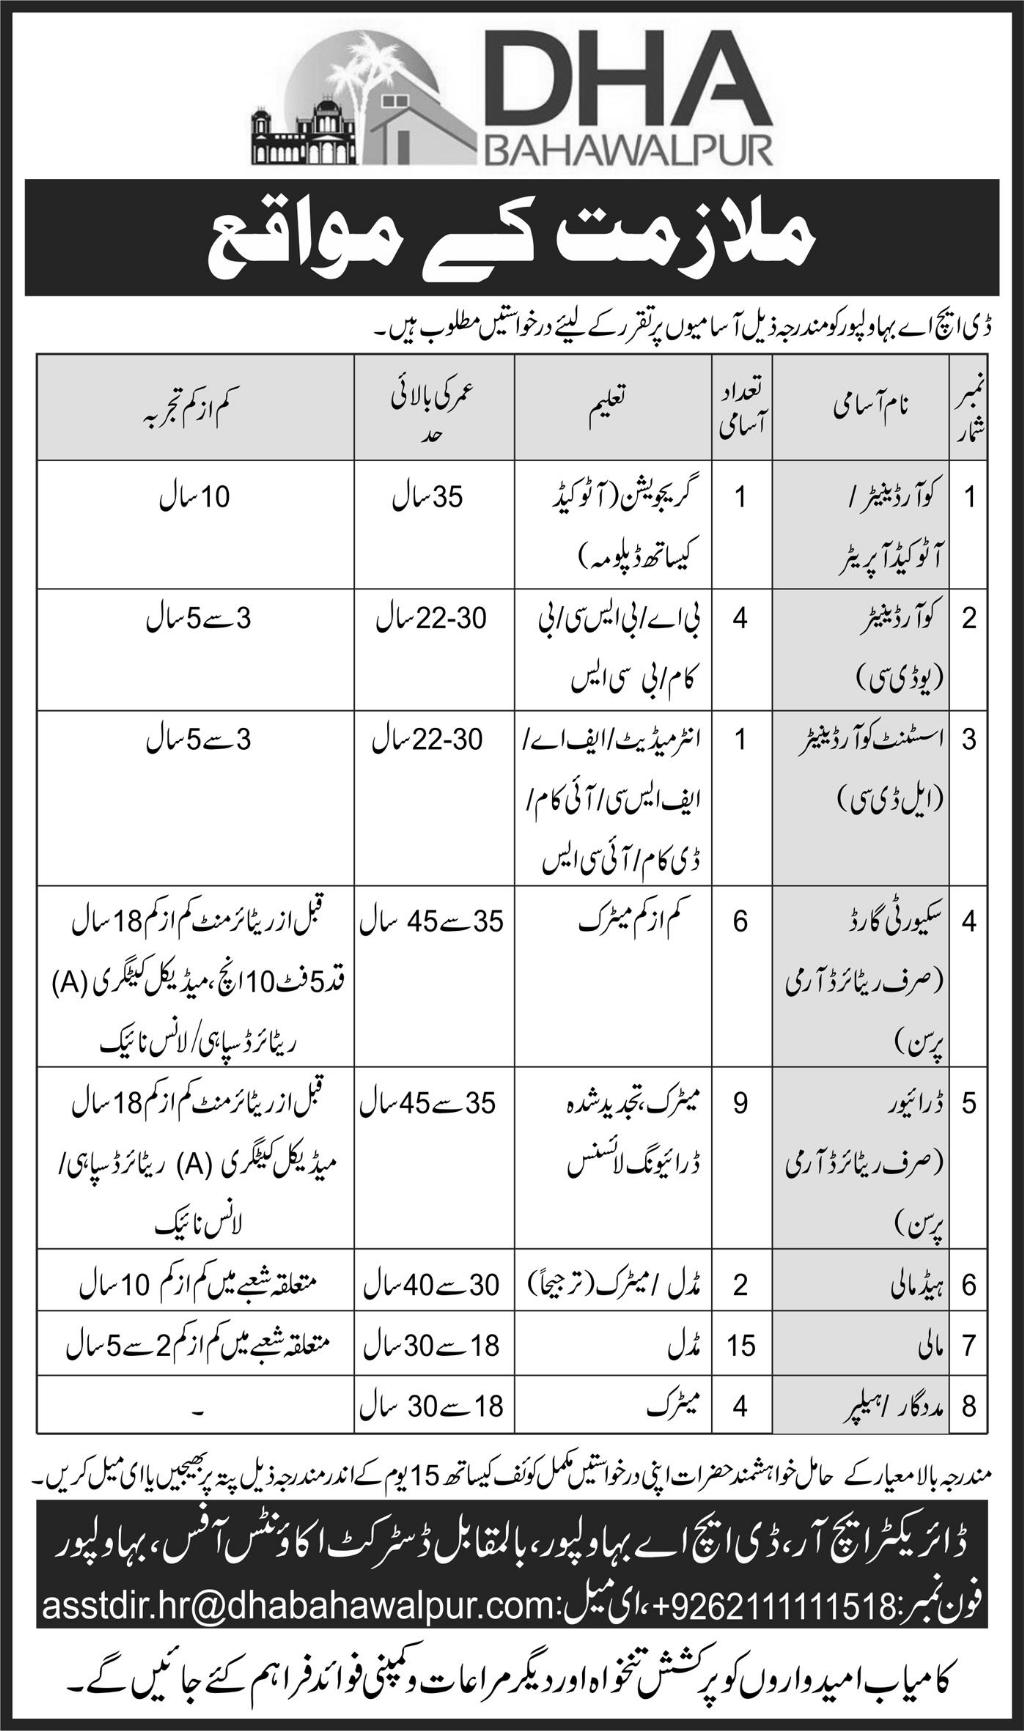 DHA Bahawalpur Latest Jobs 14 October 2018